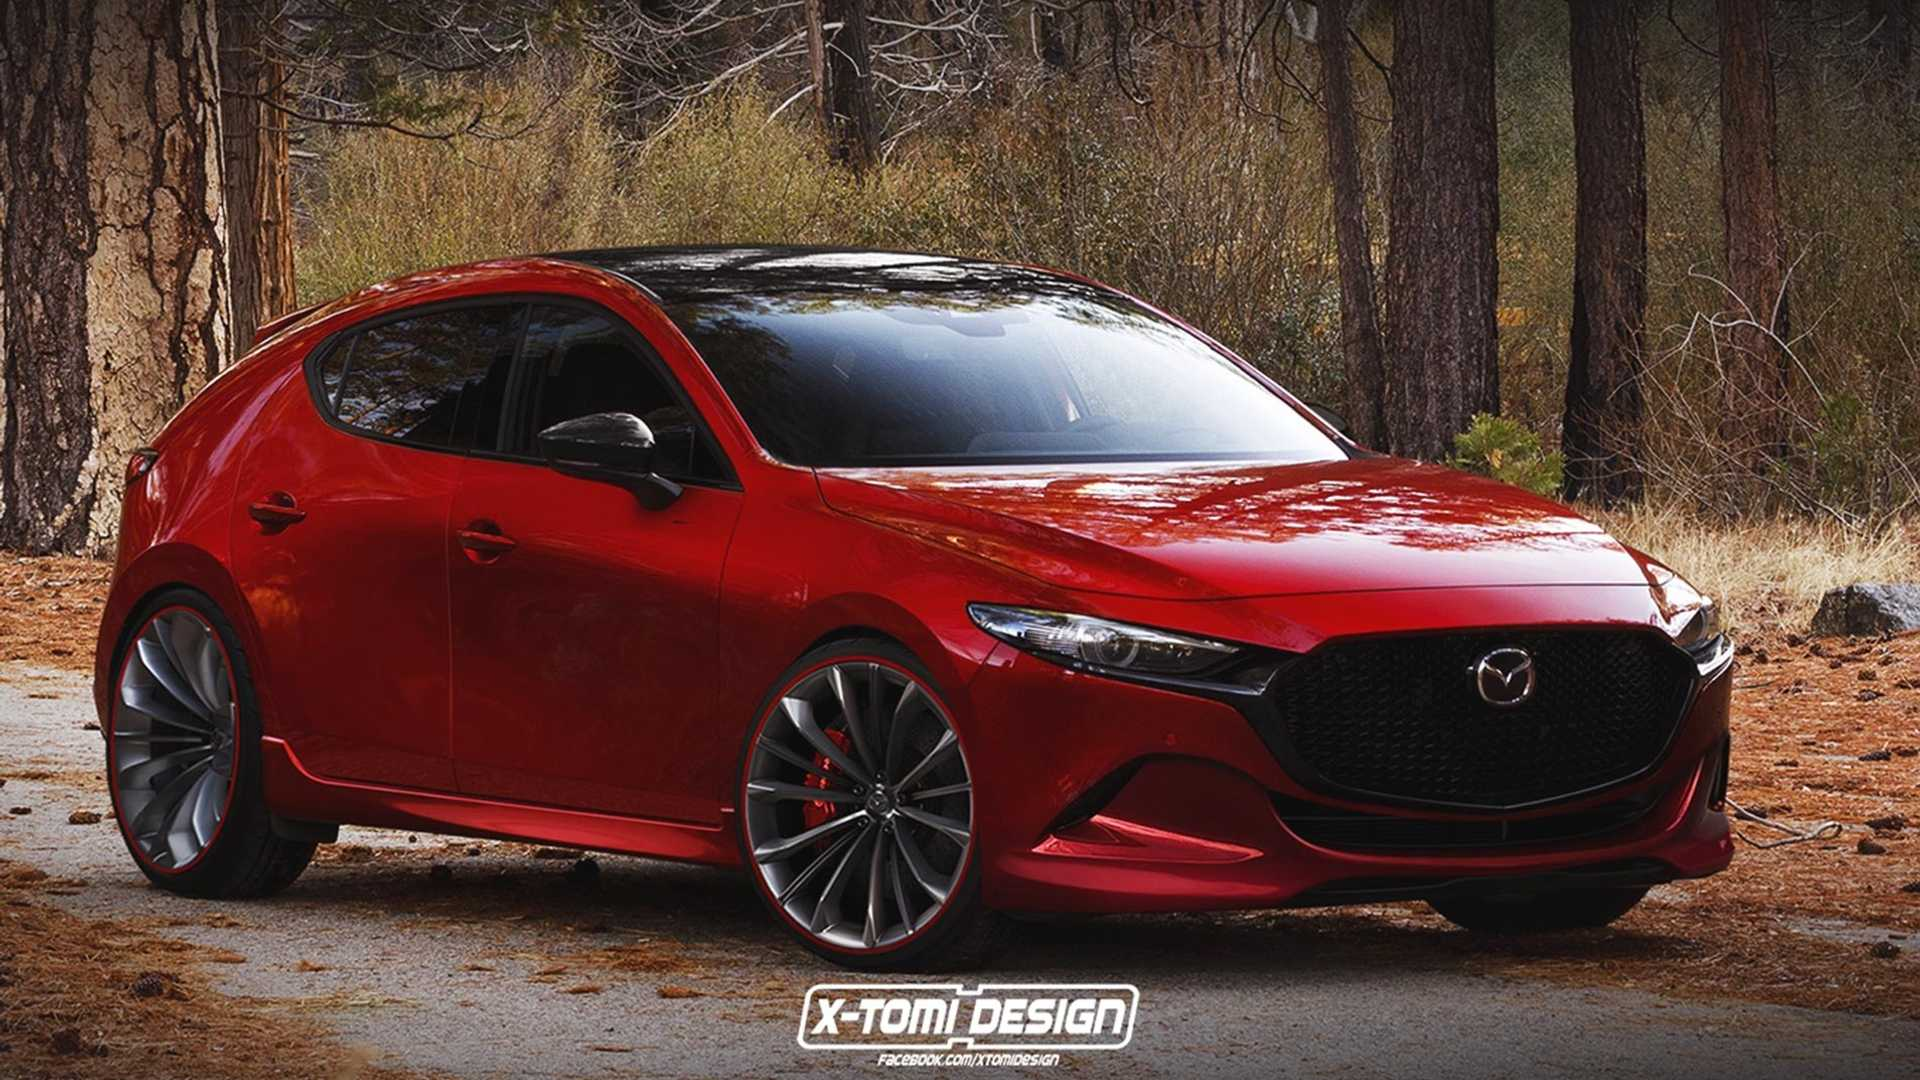 Mazda Speed 3 >> 2019 Mazda Mazdaspeed3 Render Is The Hot Hatch We Re Not Getting